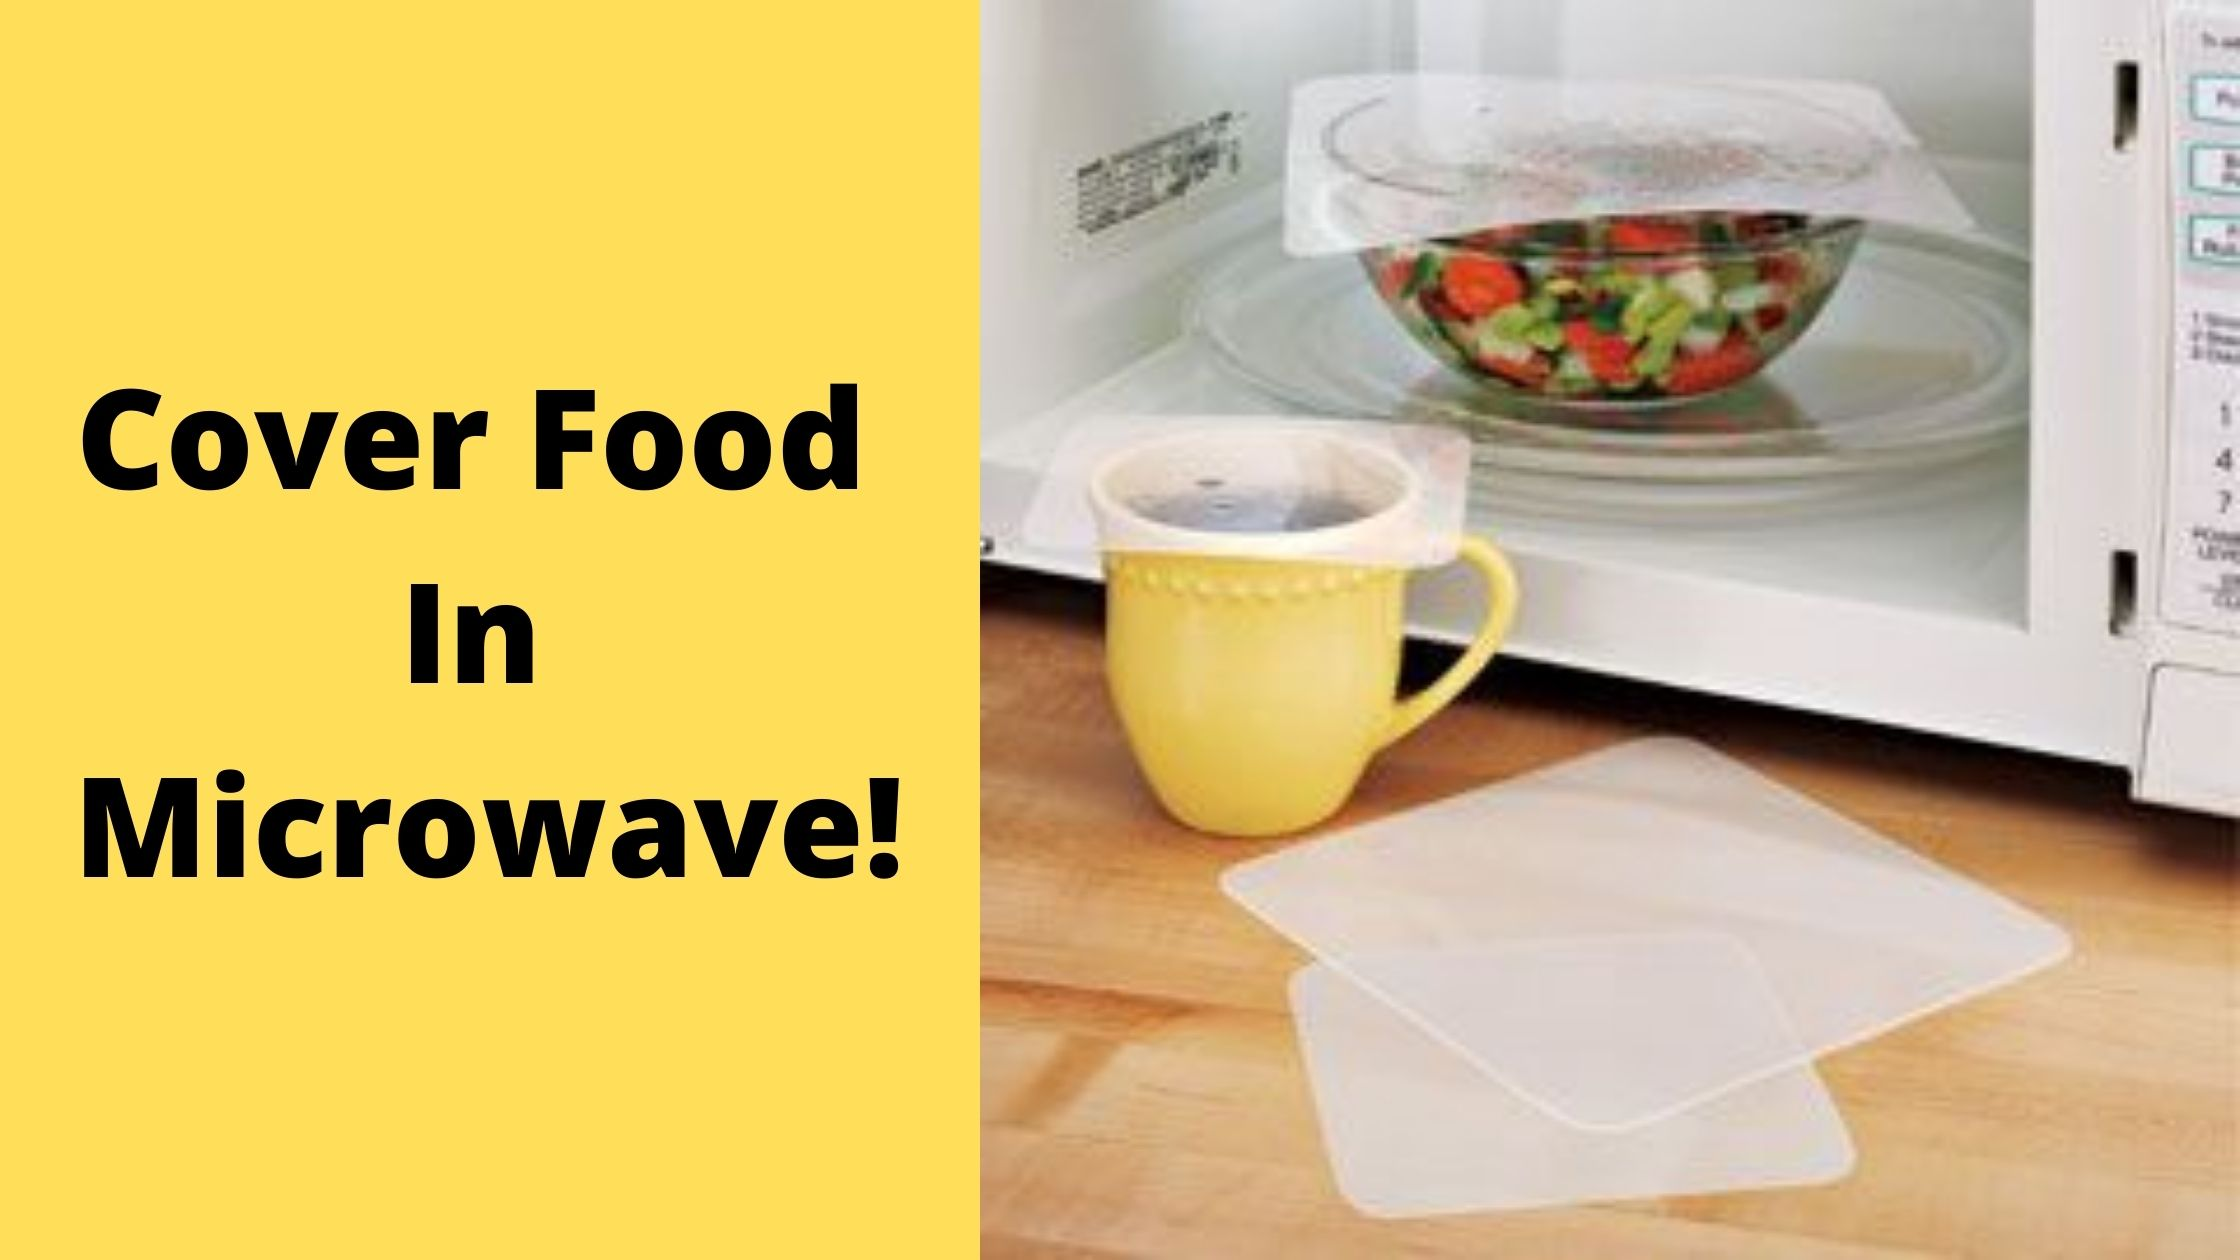 Is It Safe To Microwave Food Without Cover? Why You Should Cover Food In Microwave!